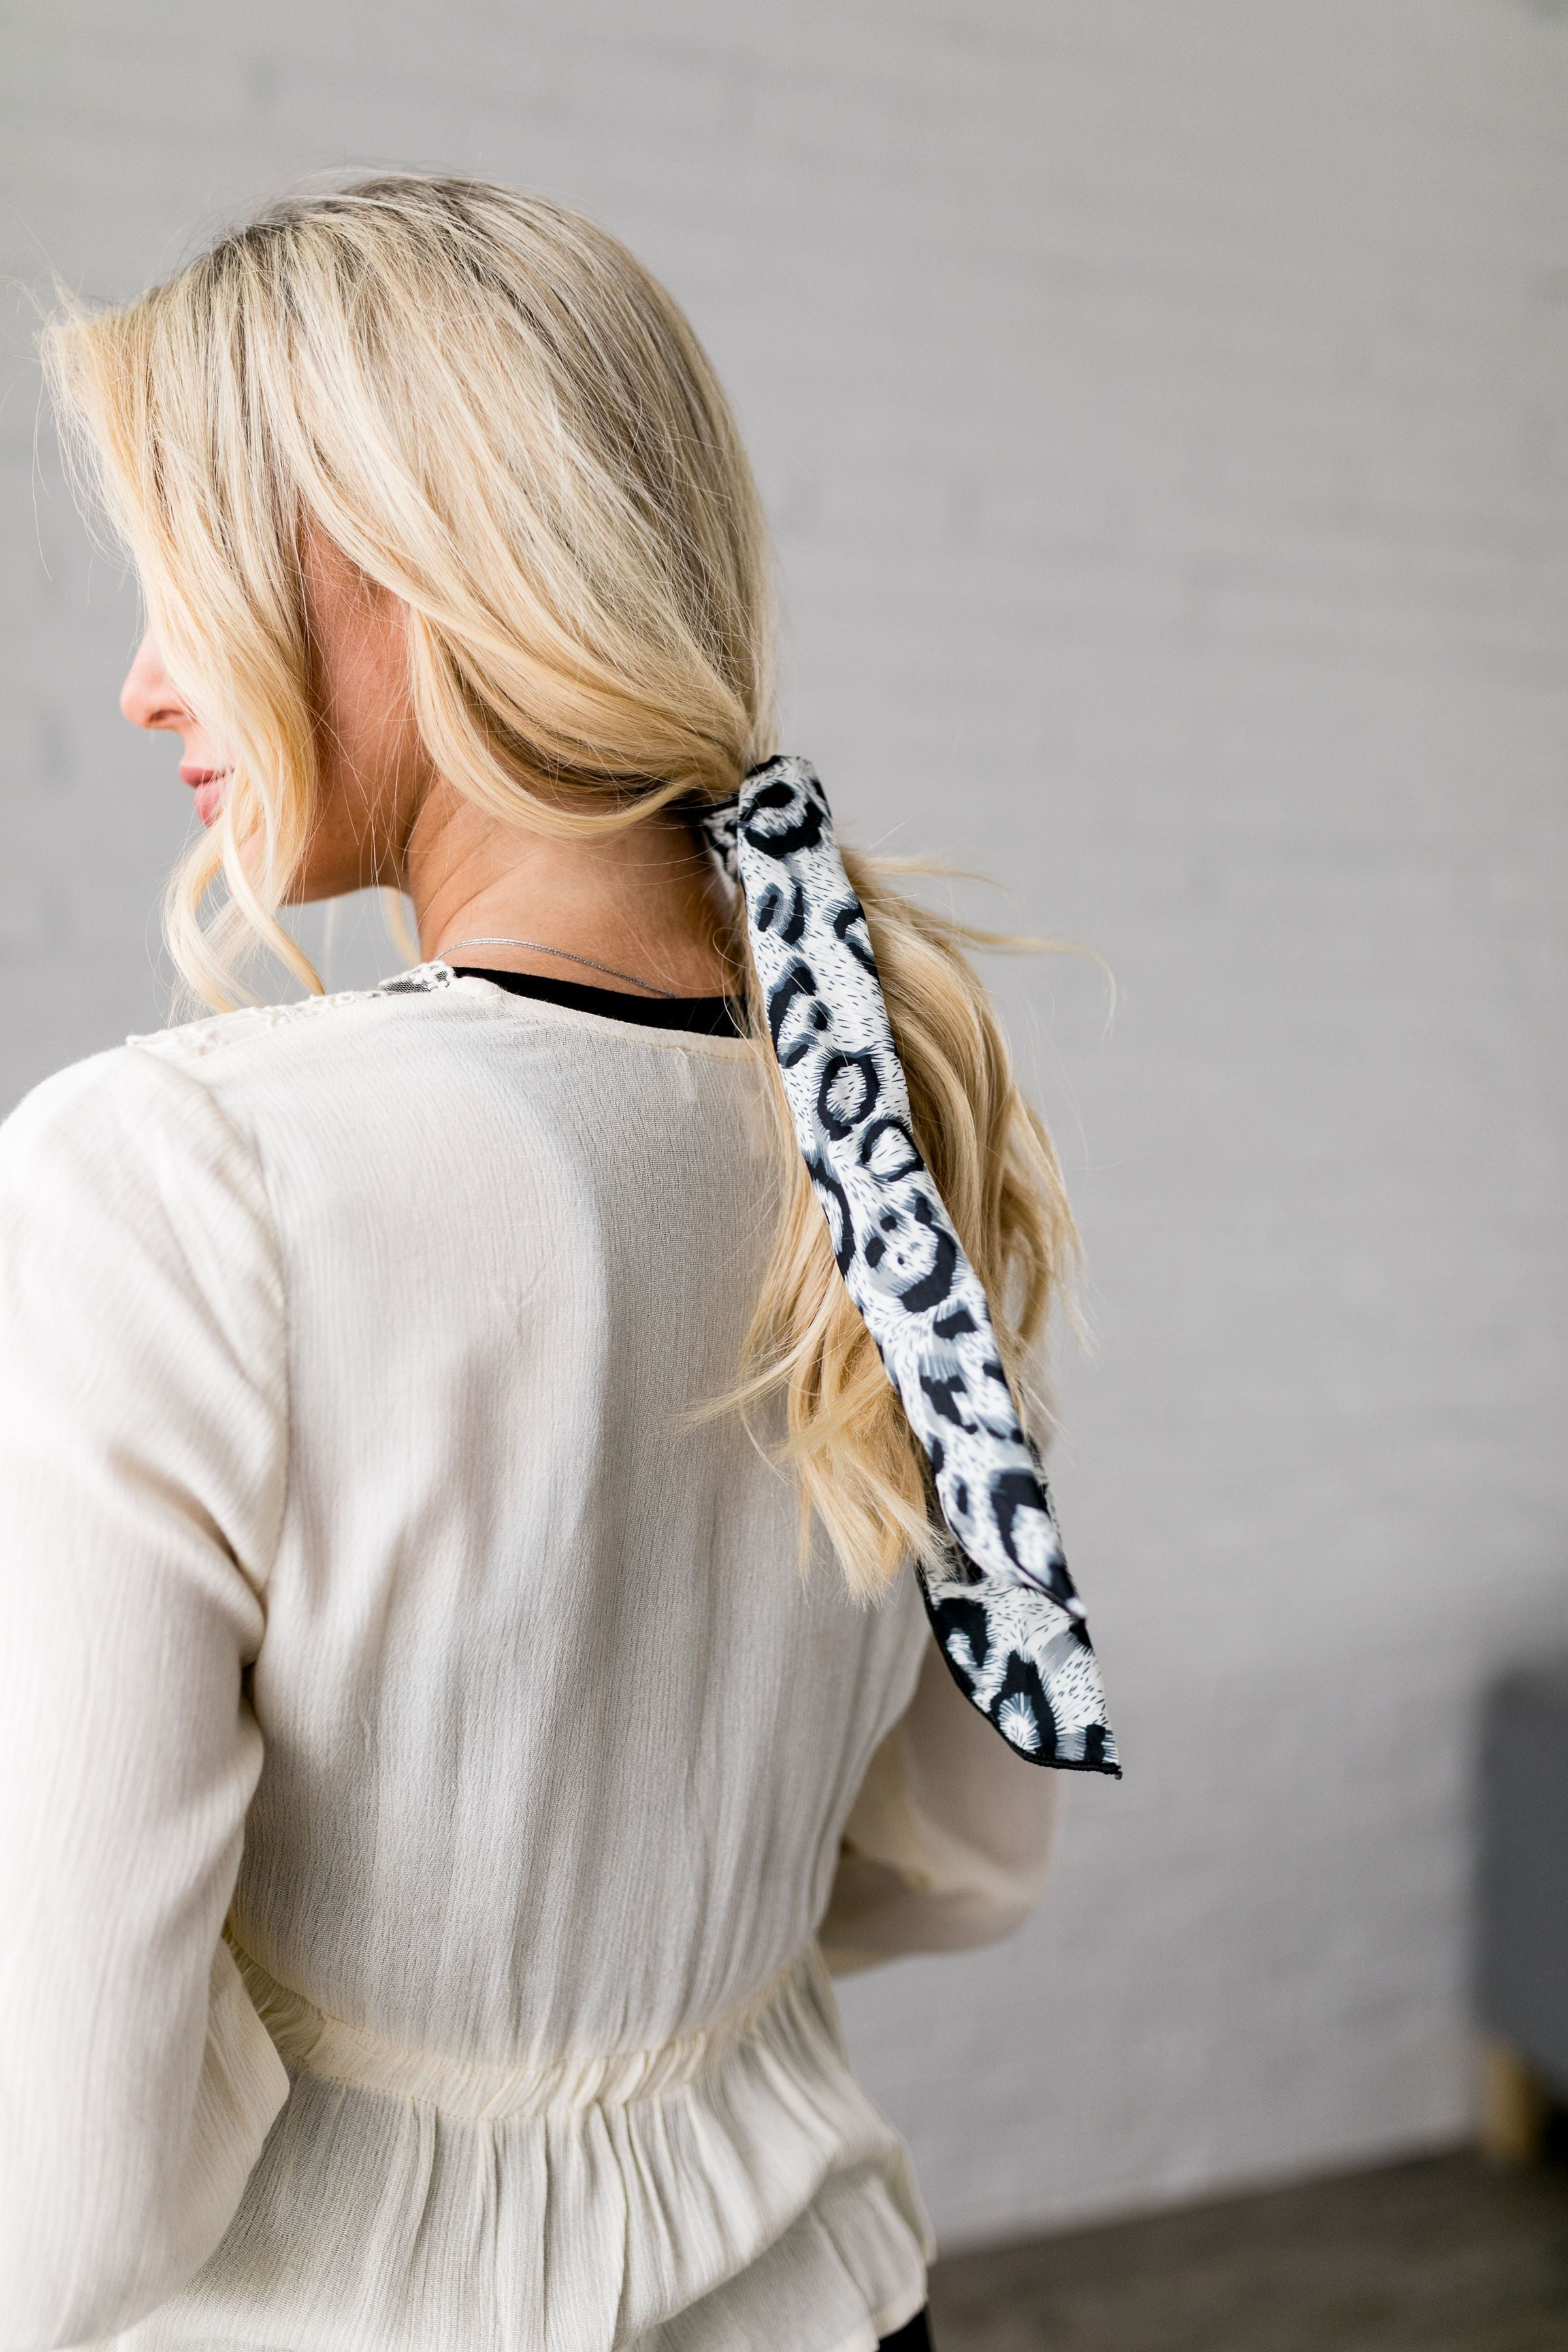 Natural Look Leopard Hair Tie In Gray